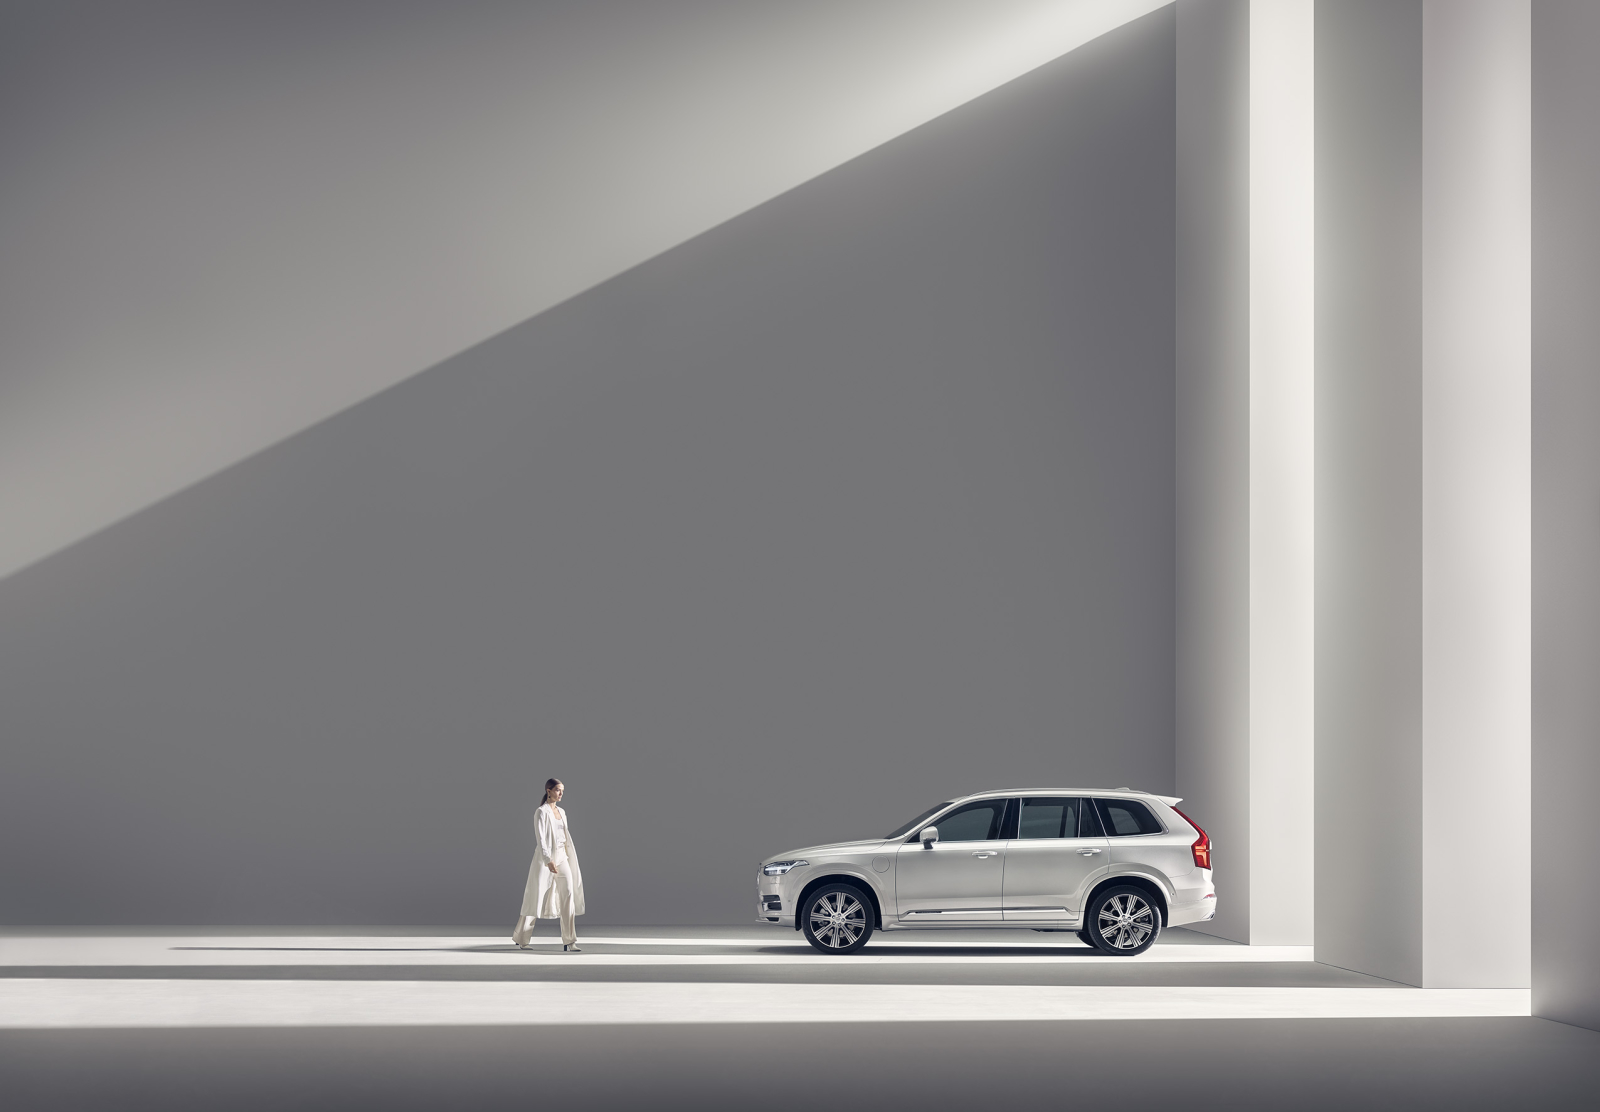 Betting on minimalistic style to win the prize. Interview with Car Photographer of the year Patrik Johall